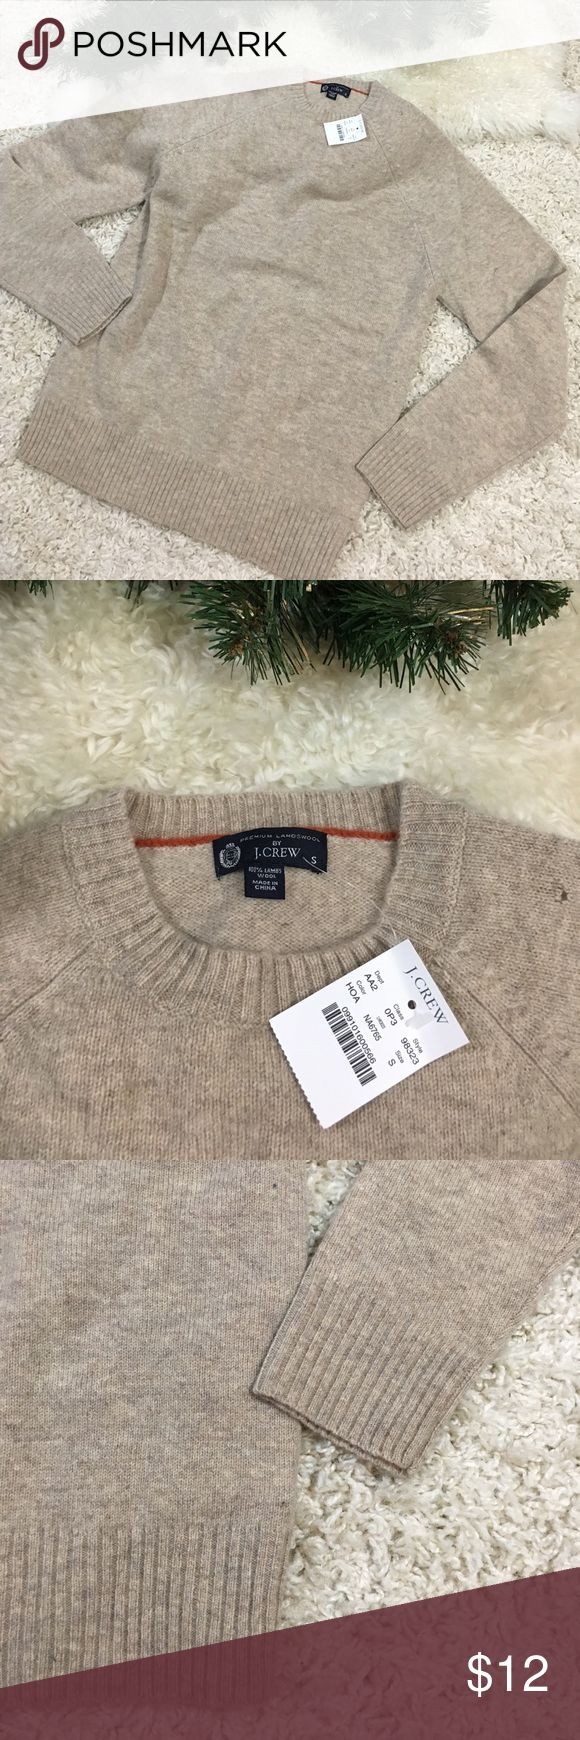 J.Crew Lambswool Sweater New! New with tags J.Crew lambswool sweater. Size small. Simply gorgeous creamy knit. This is a crew neck pullover style. I wish this beauty were in my size!  Smoke free home!  Please note this is J.Crew and not the outlet style, J.Crew factory.  PLEASE NOTE: There is a tiny hole on the shoulder. See photo. J. Crew Sweaters Crew & Scoop Necks